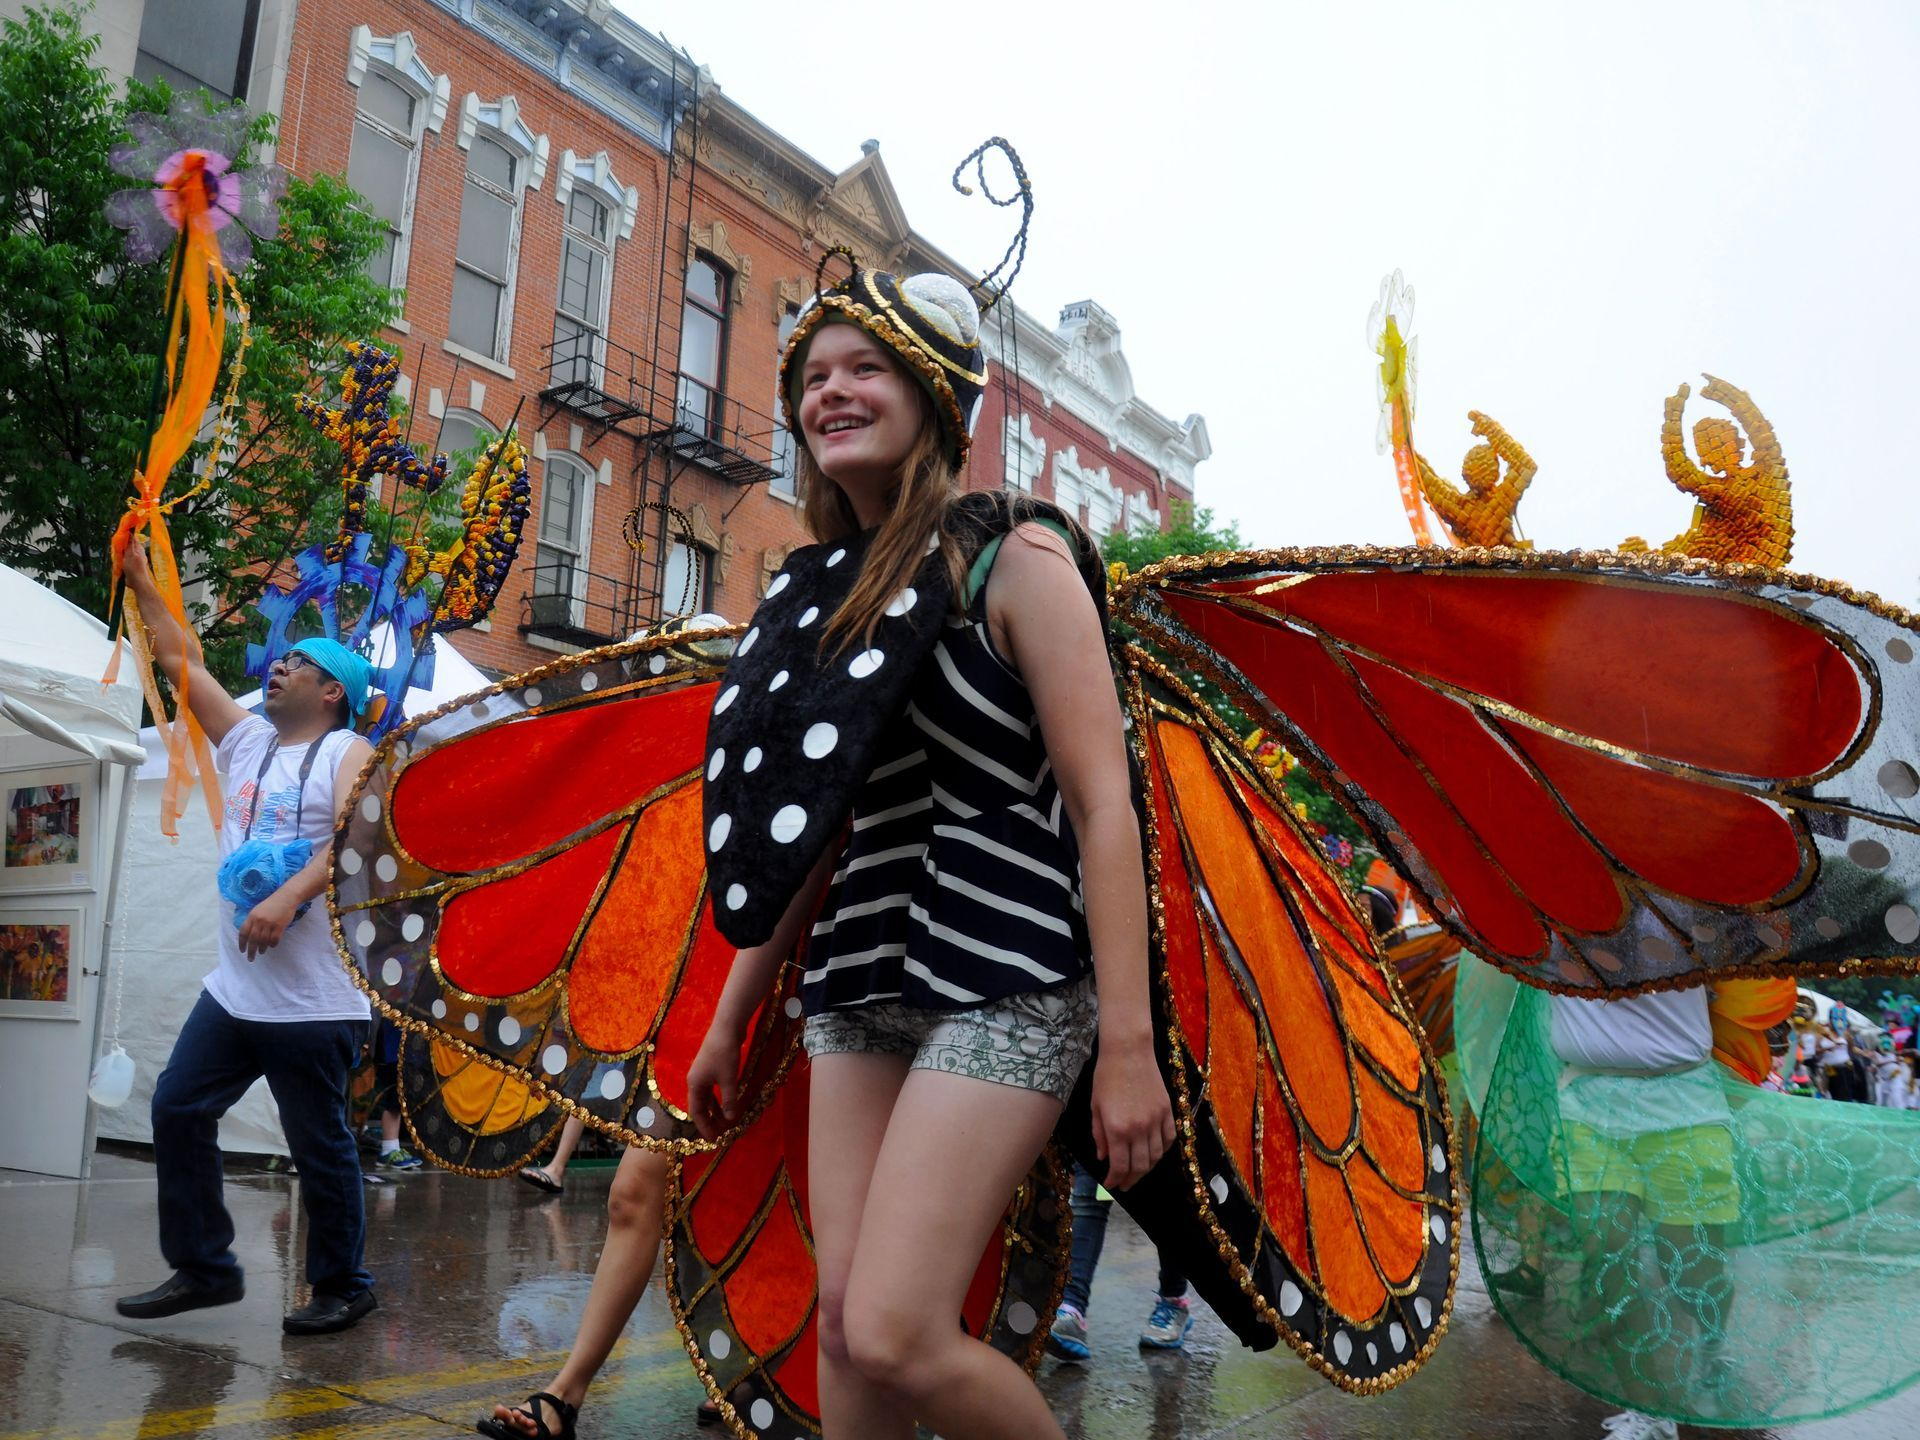 Iowa City Carnaval Parade, part of the Summer of the Arts events ...